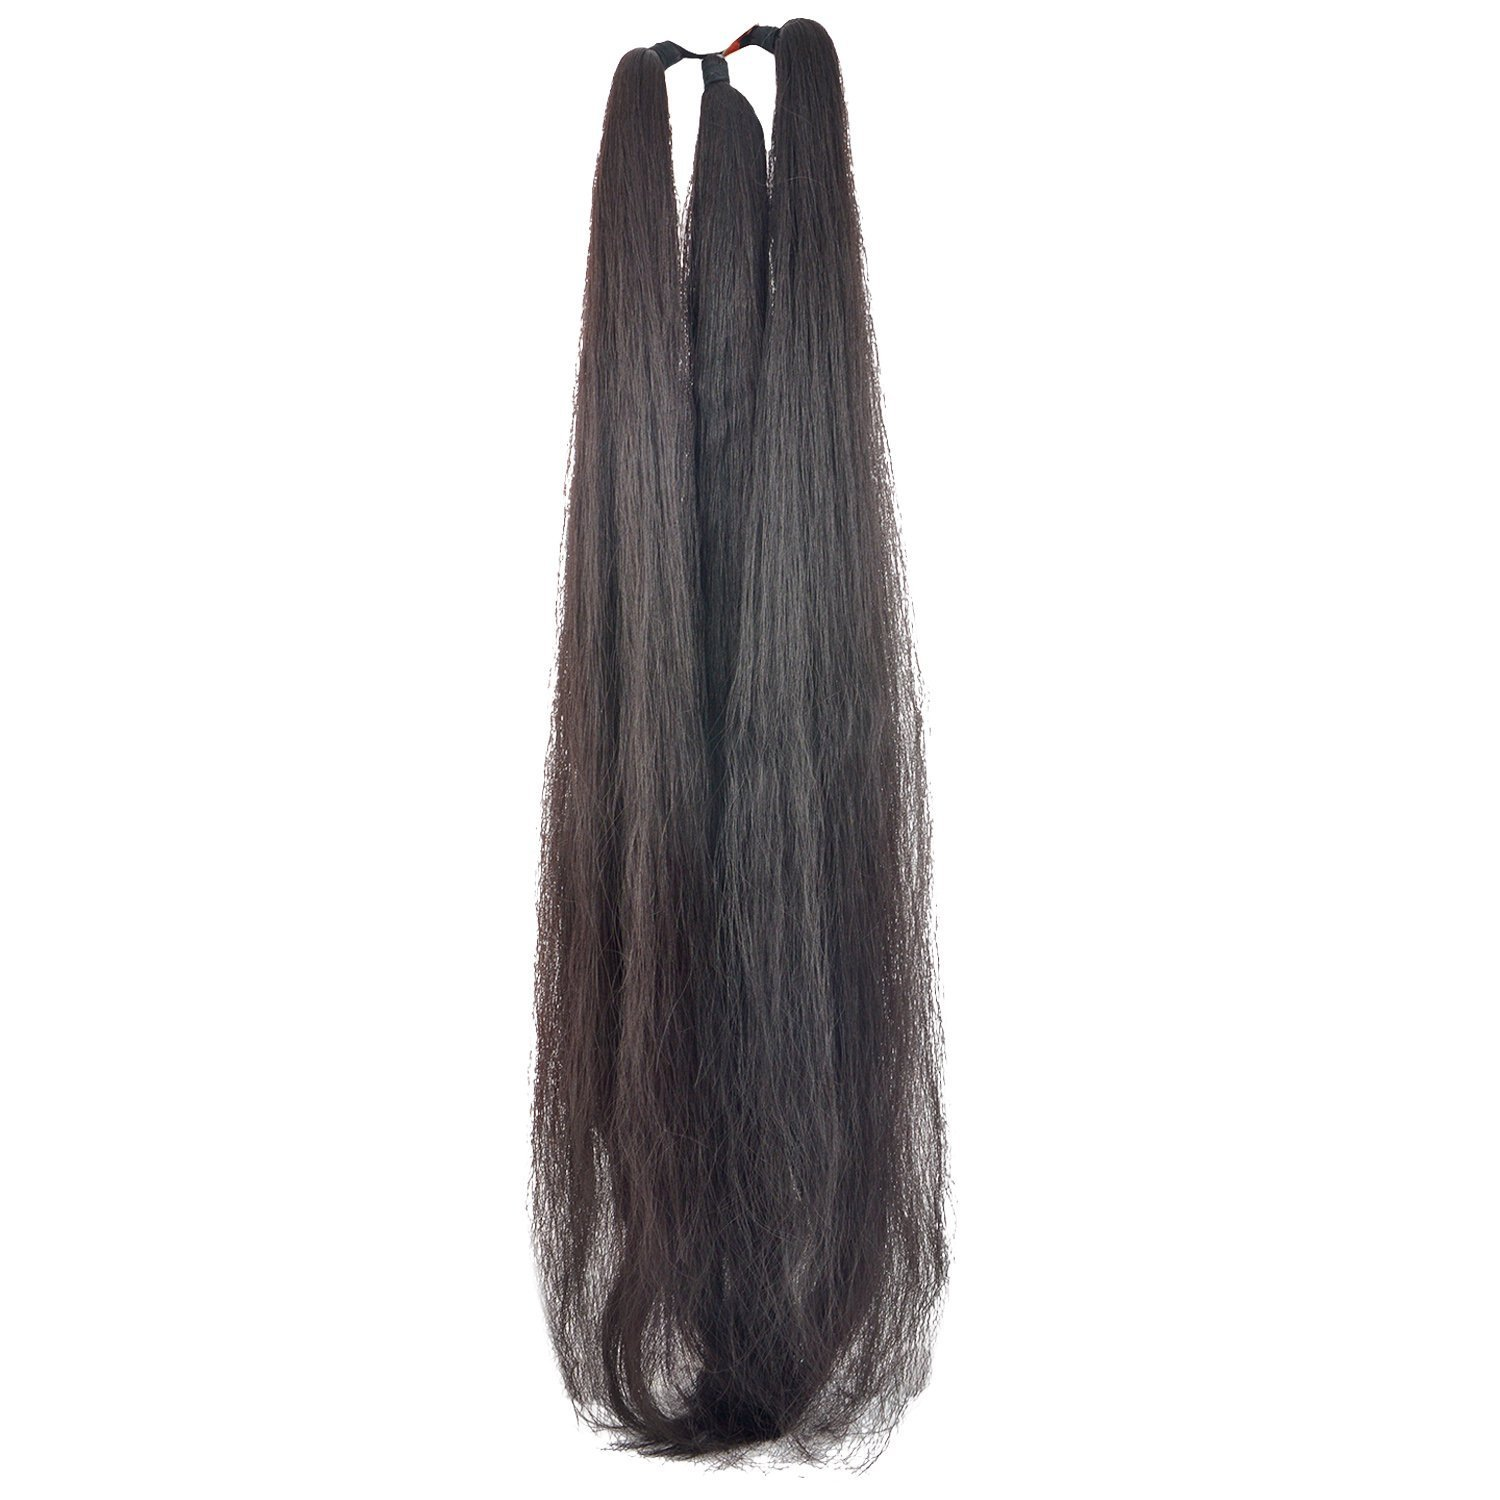 Hair extensions buy hair extensions online at best prices in natya shastra nylon hair extension black 30 inch pmusecretfo Gallery